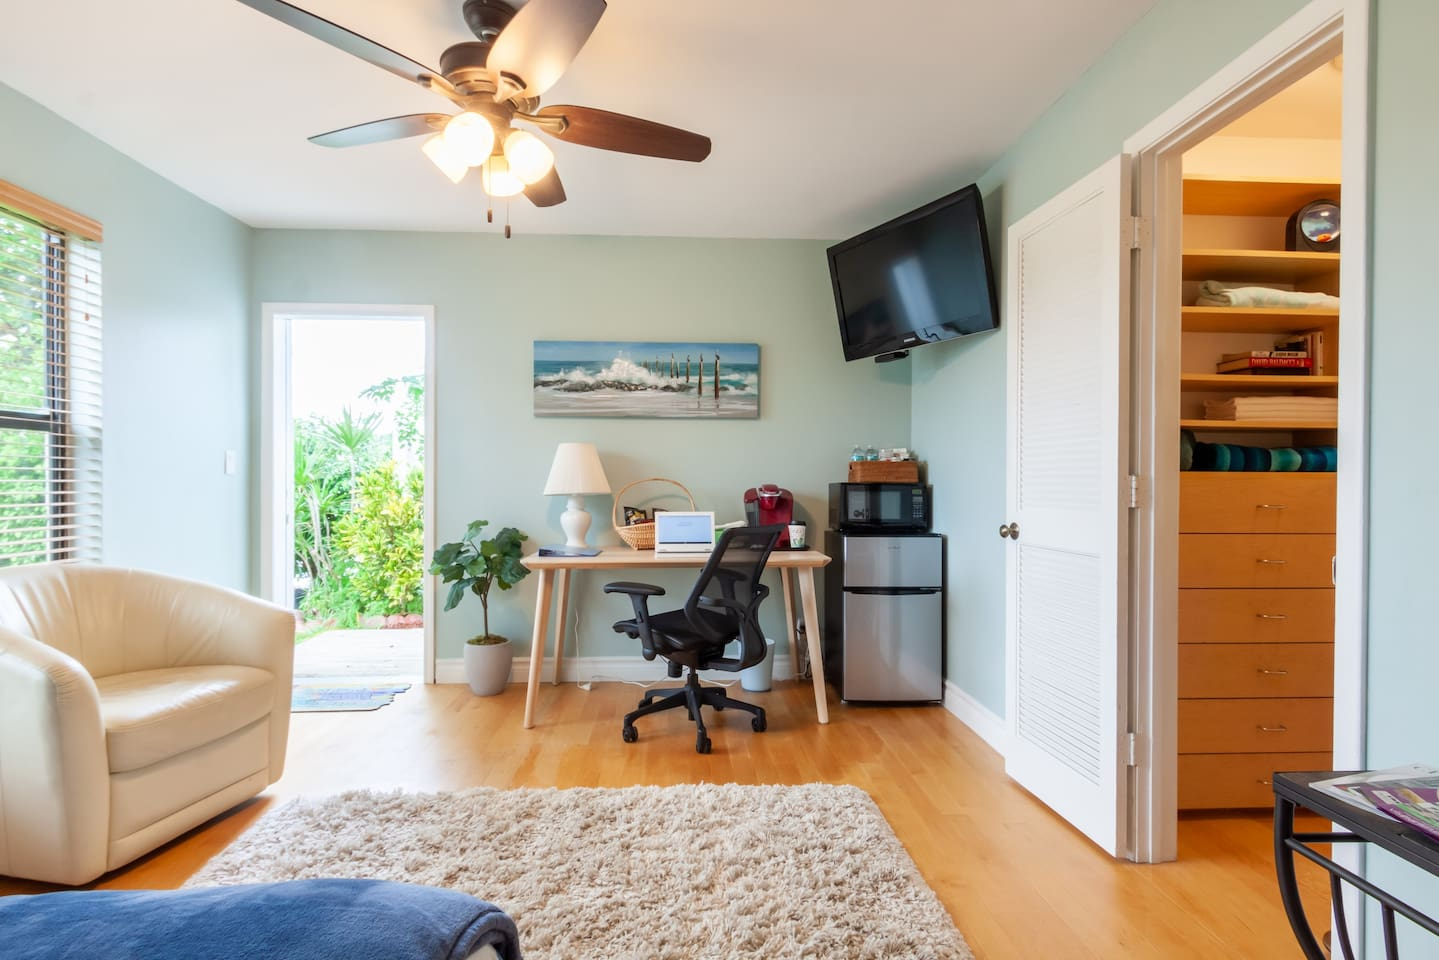 Private newly renovated bedroom suite with separate entrance for your convenience